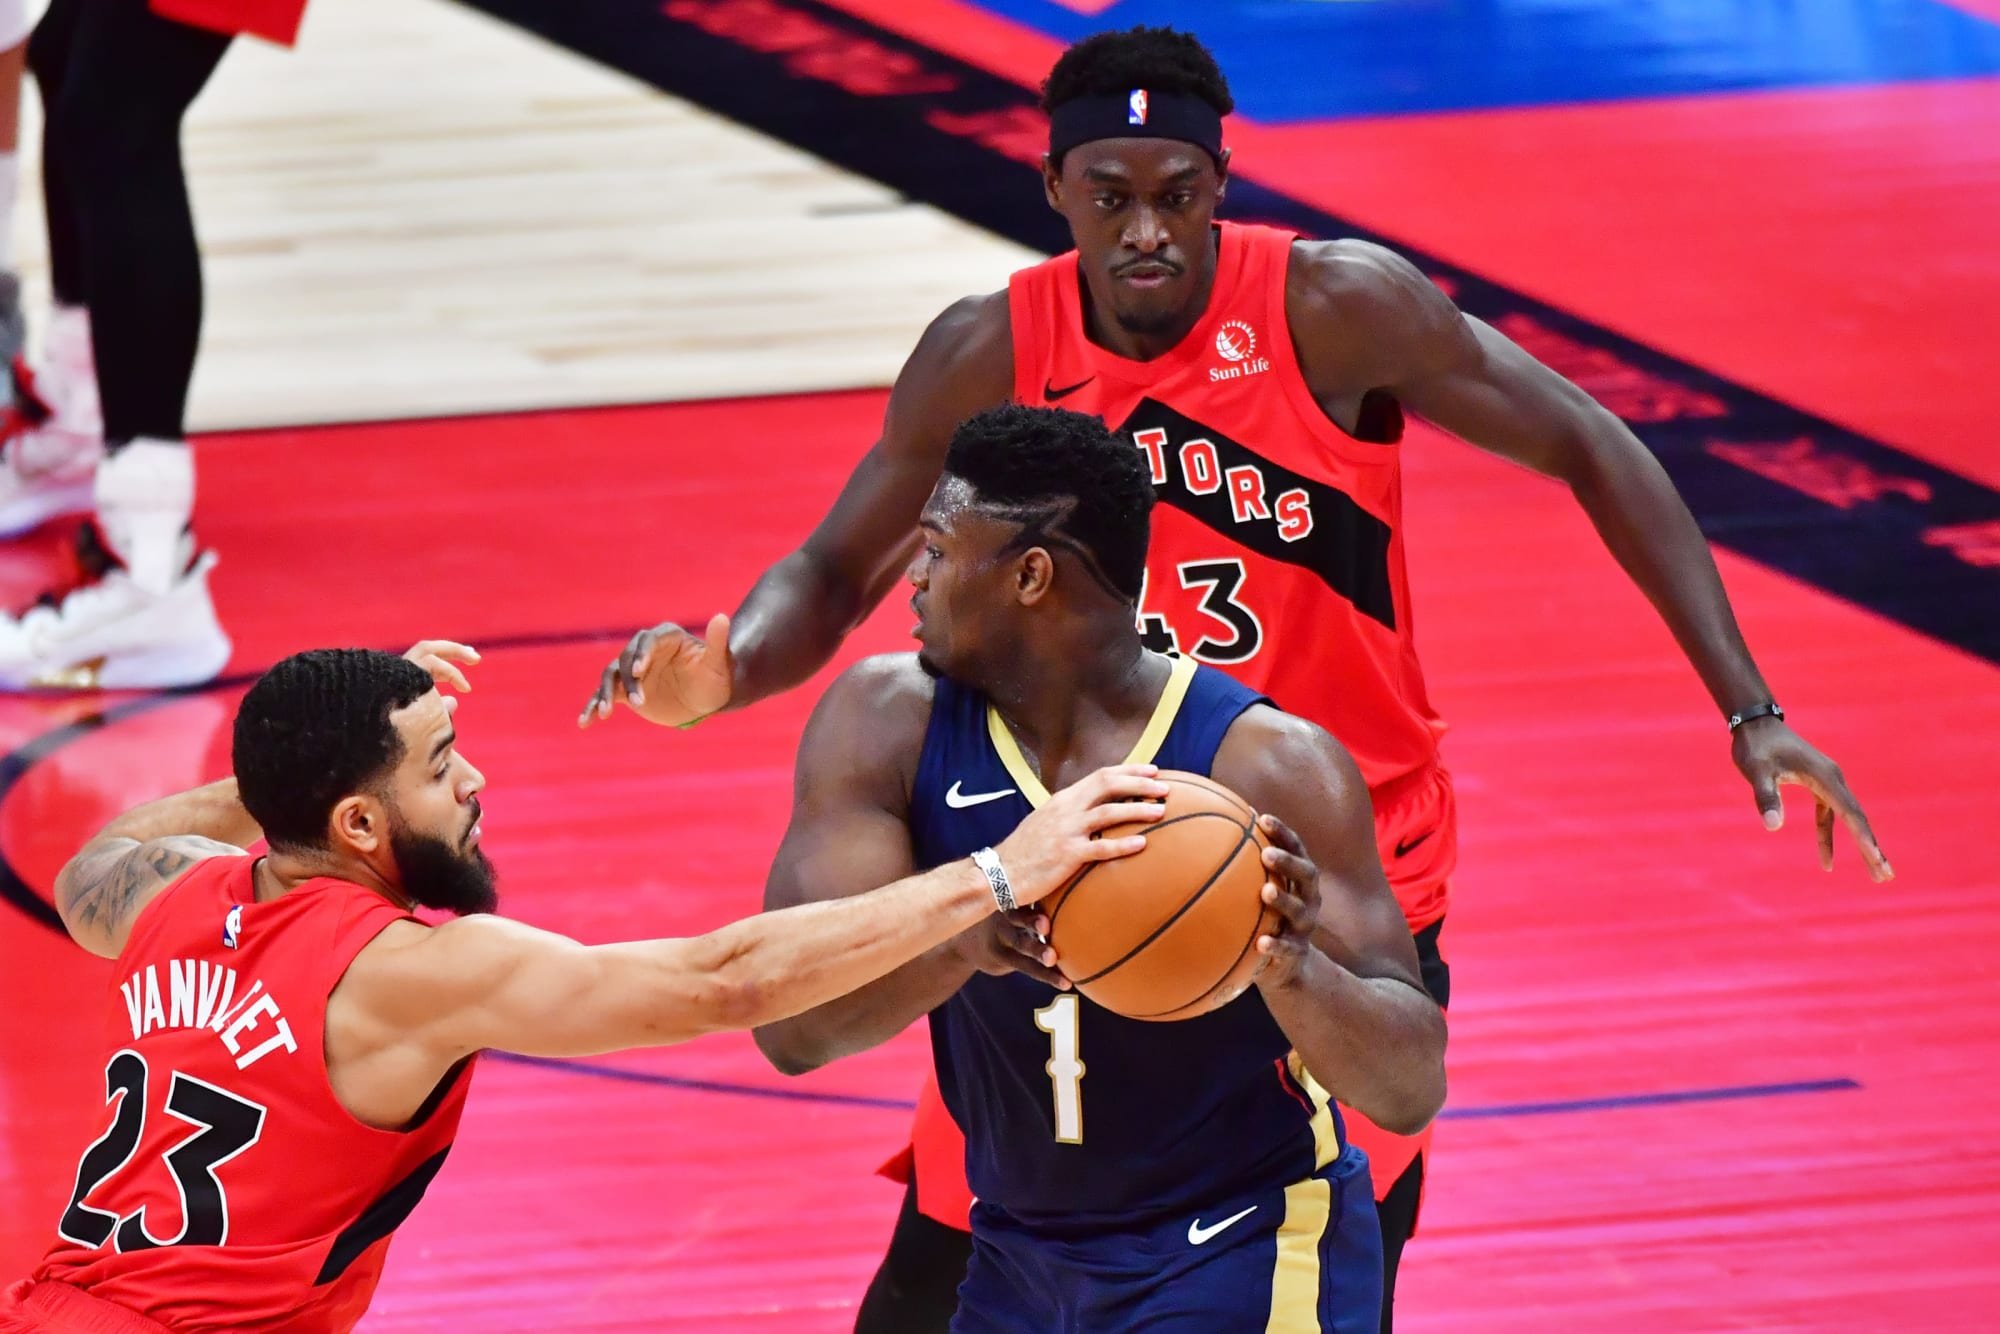 Toronto Raptors: Things to watch for against New Orleans Pelicans